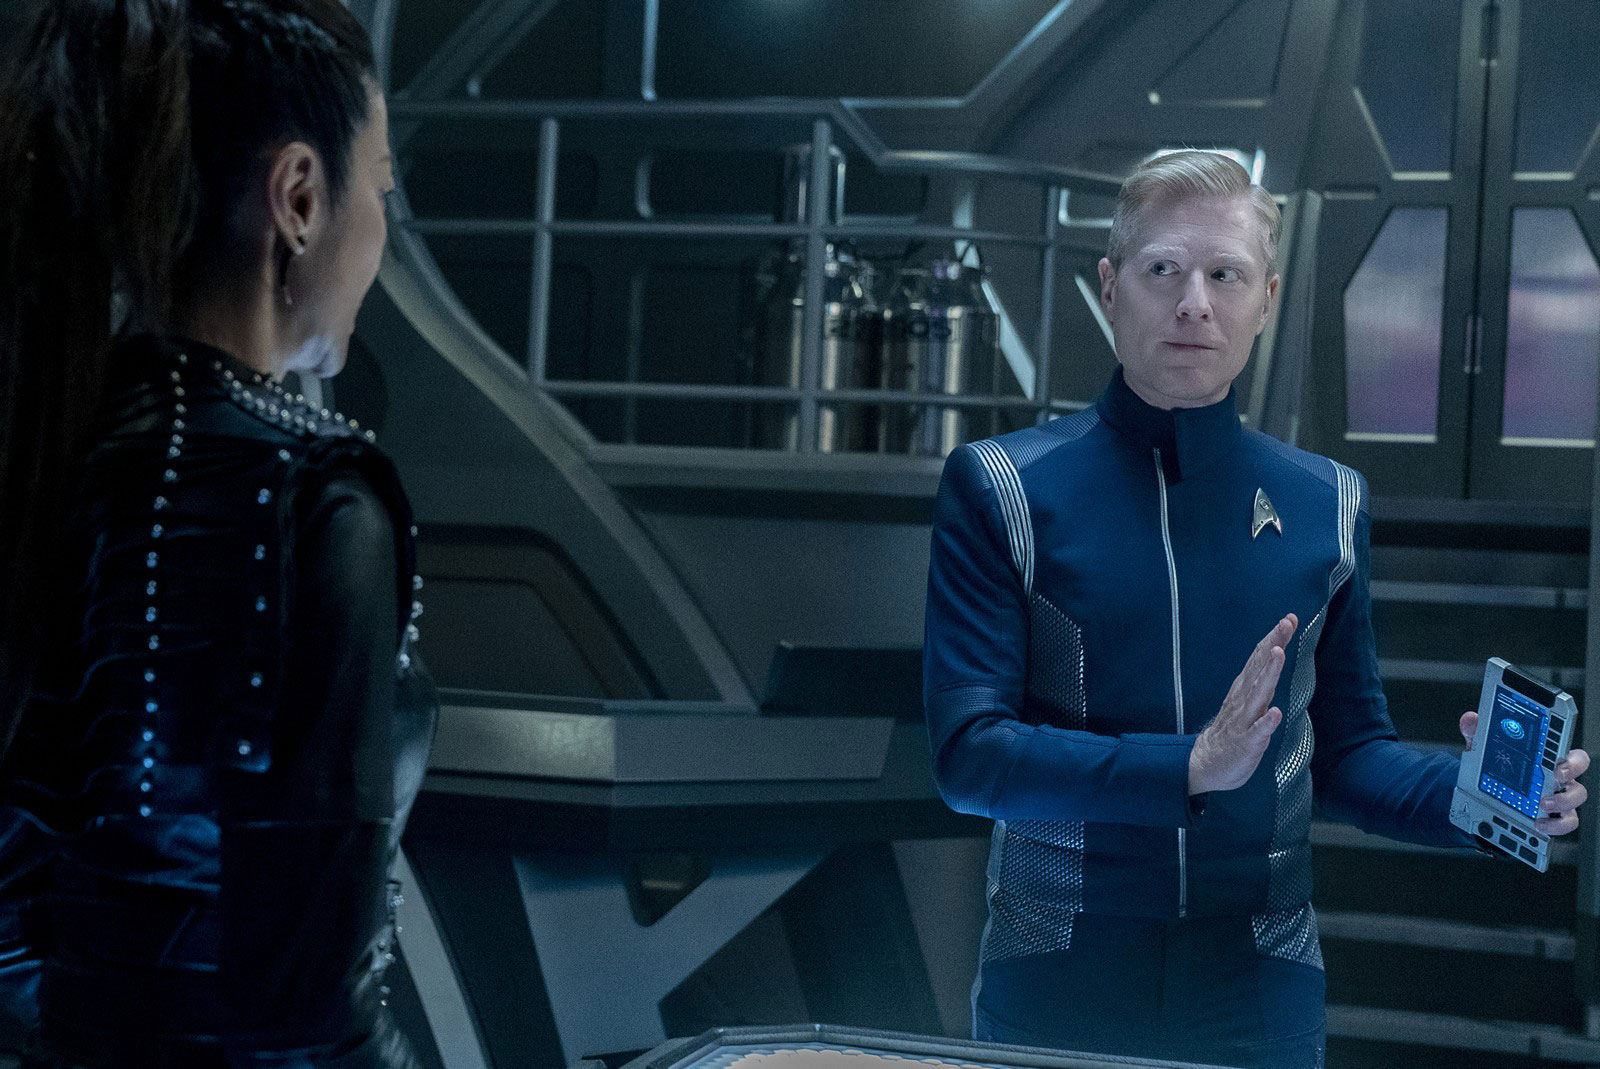 Michelle Yeoh as Philippa Georgiou and Anthony Rapp as Paul Stamets